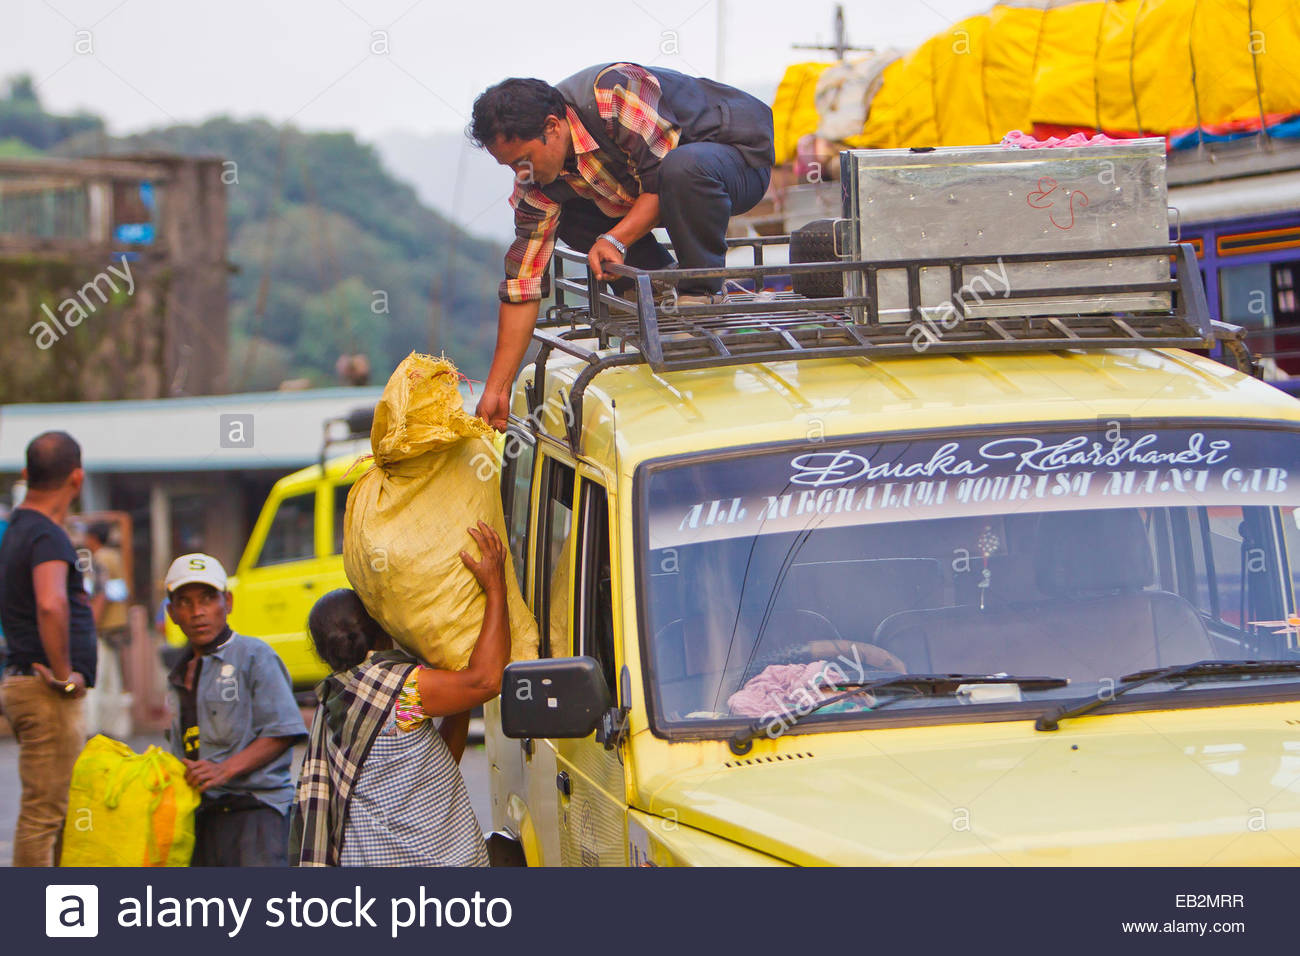 Indian people unloading a truck loaded with supplies. - Stock Image